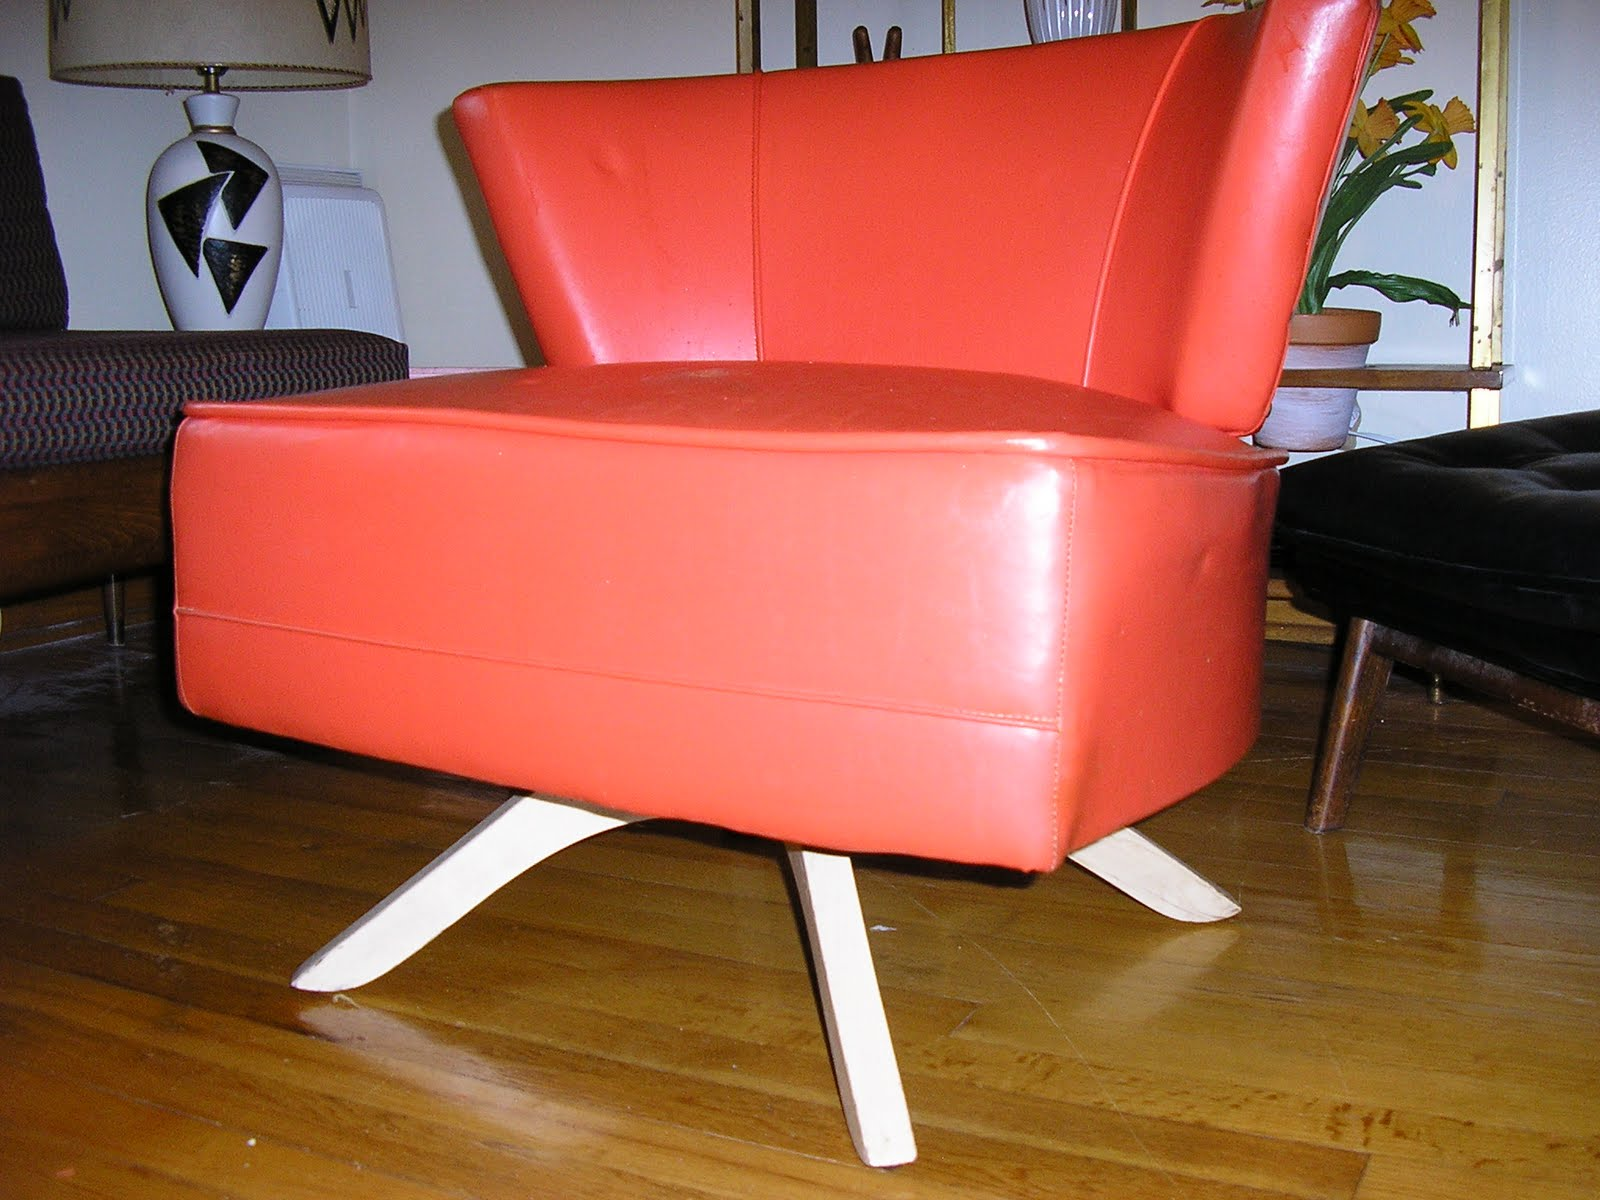 Bright Retro Orange Vinyl Swivel Chair With 50u0027s Blonde Legs. One Repair In  Seat The Size Of A Nickle But No Other Problems With This Bueatiful Chair.